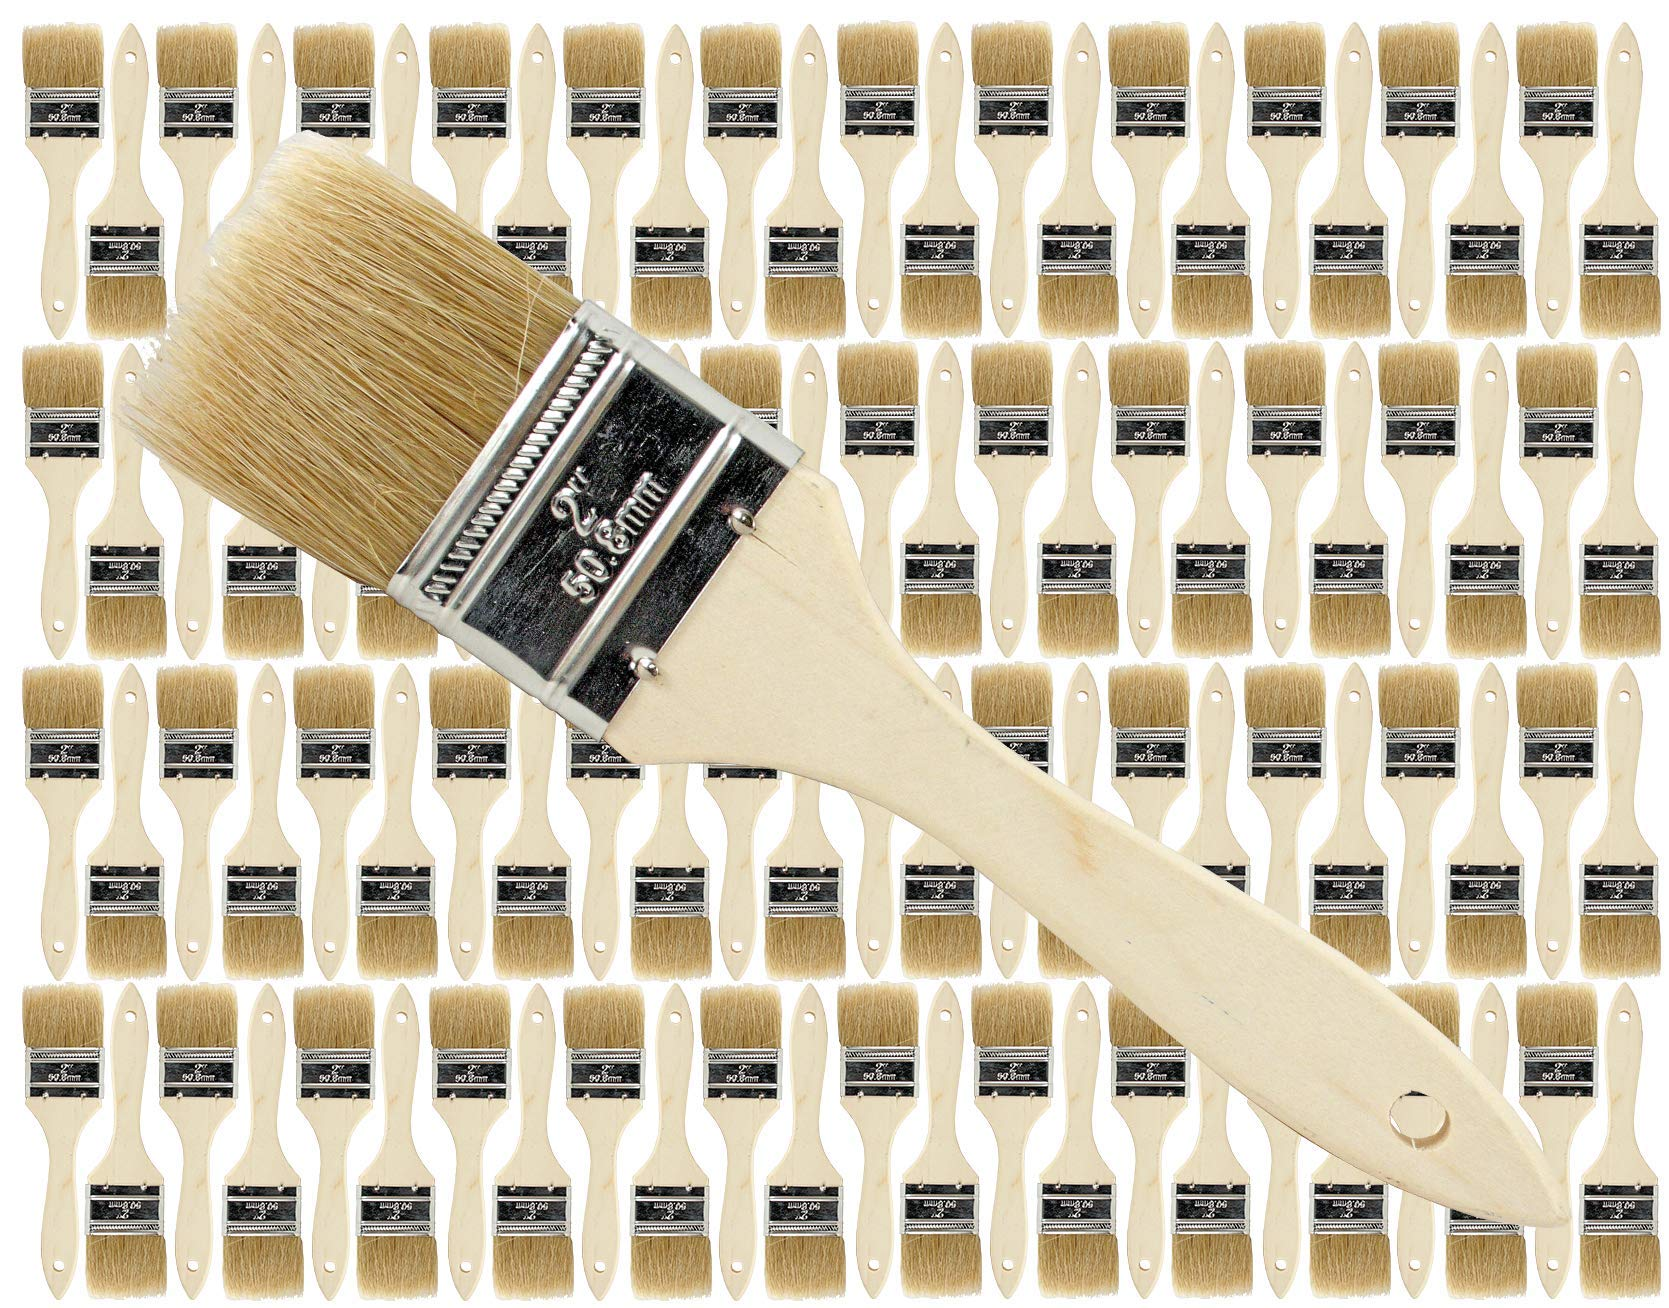 Pro Grade - Chip Paint Brushes - 96 Ea 2 Inch Chip Paint Brush by Pro-Grade